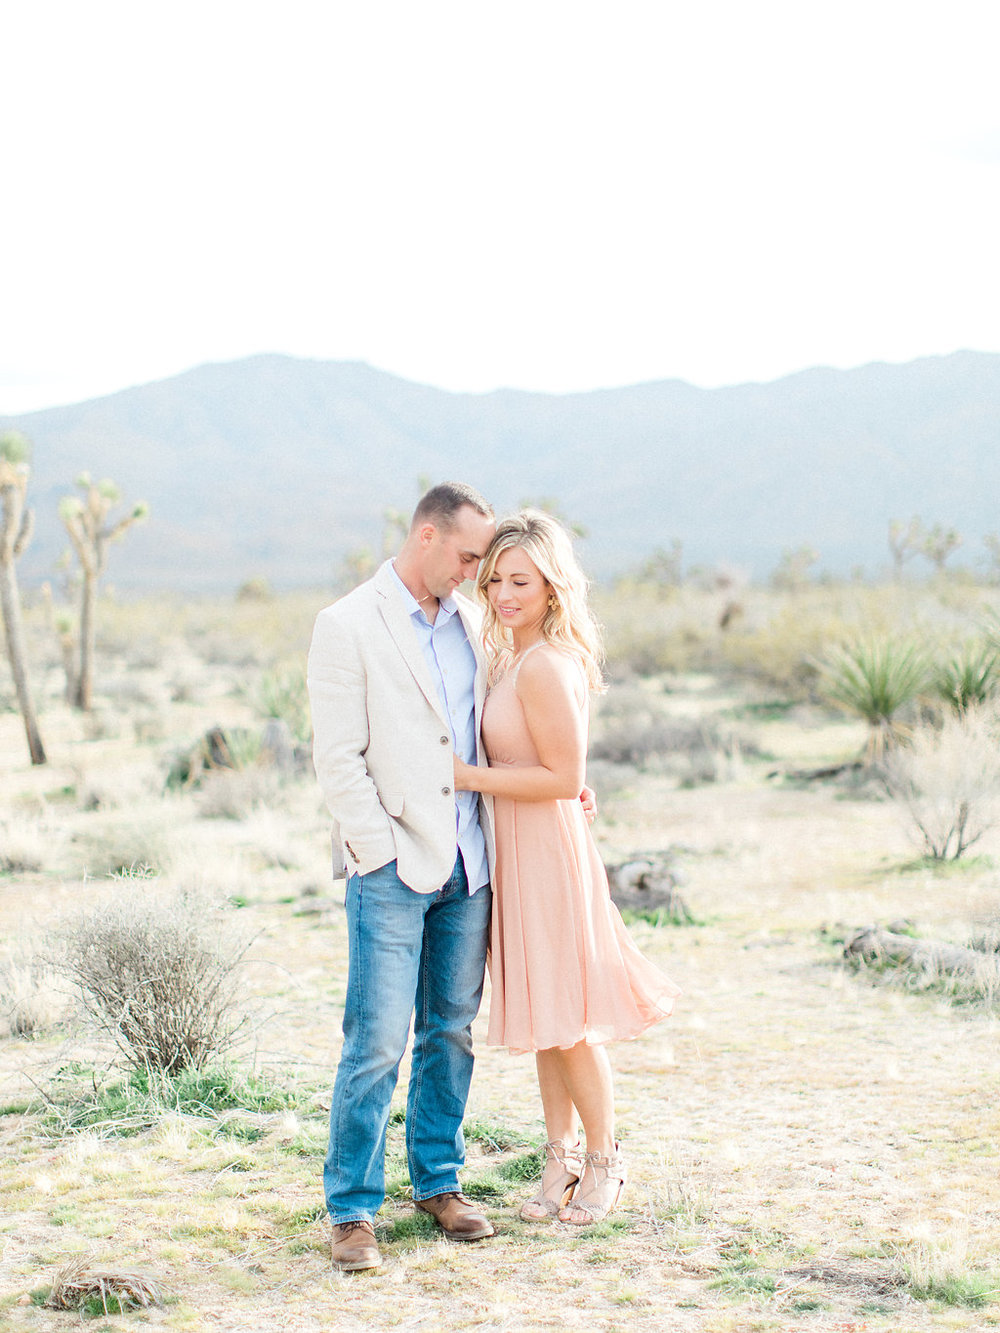 Joshua Tree Engagement Session | What to Wear for Pictures | Southern California Wedding Photographer | Mastin Labs Fuji Film | Fine Art Photographer | Desert Shoot | Perfect Posing.jpg